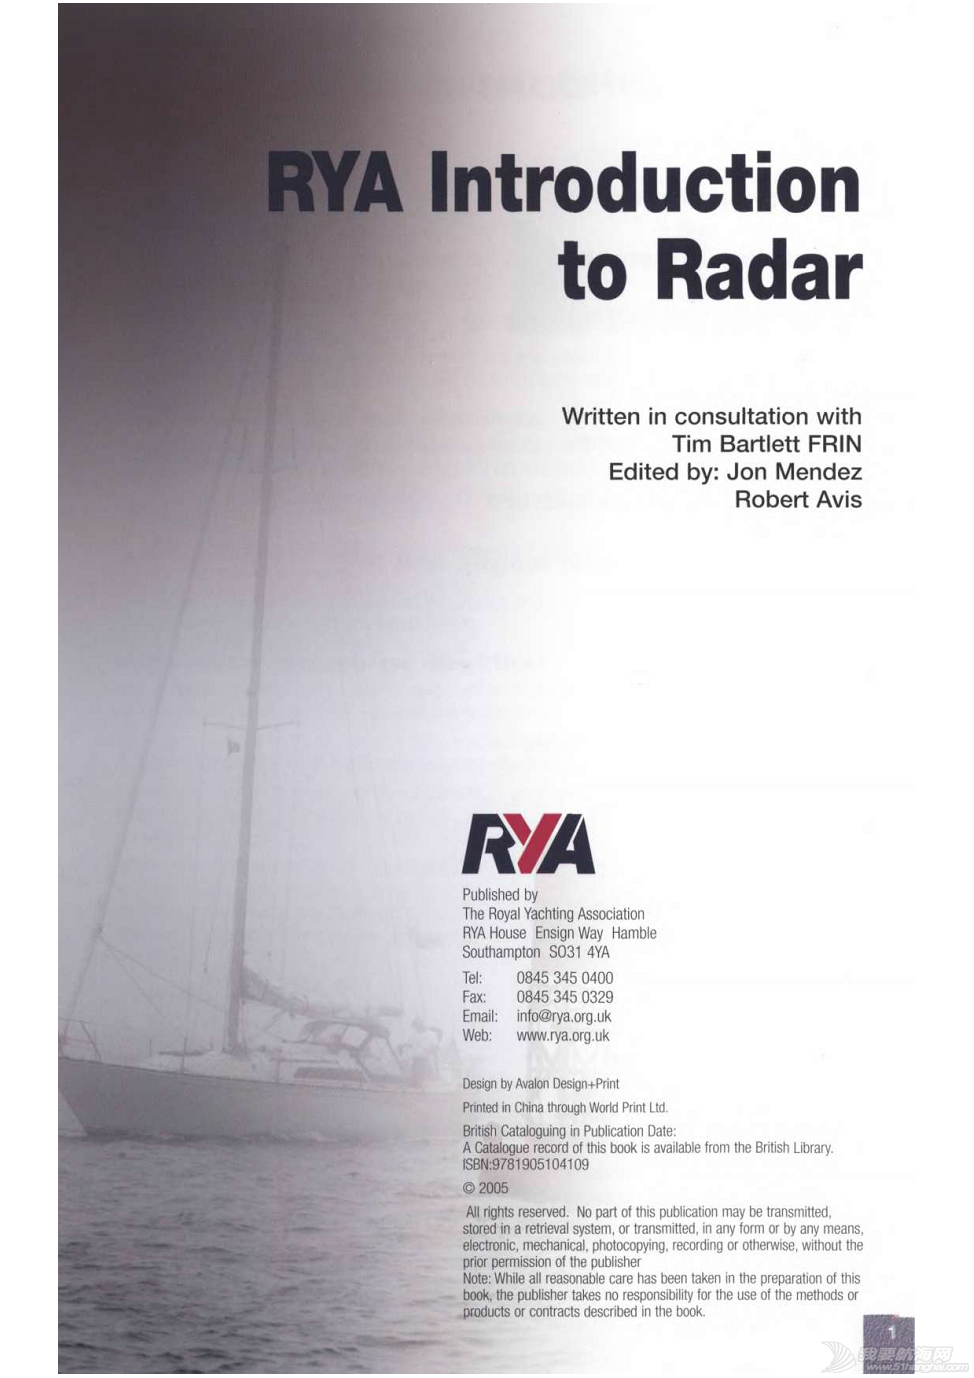 小伙伴,英文版,著作权,中文,帆船 ©RYA《雷达使用简介》An introduction to Radar.完稿 2